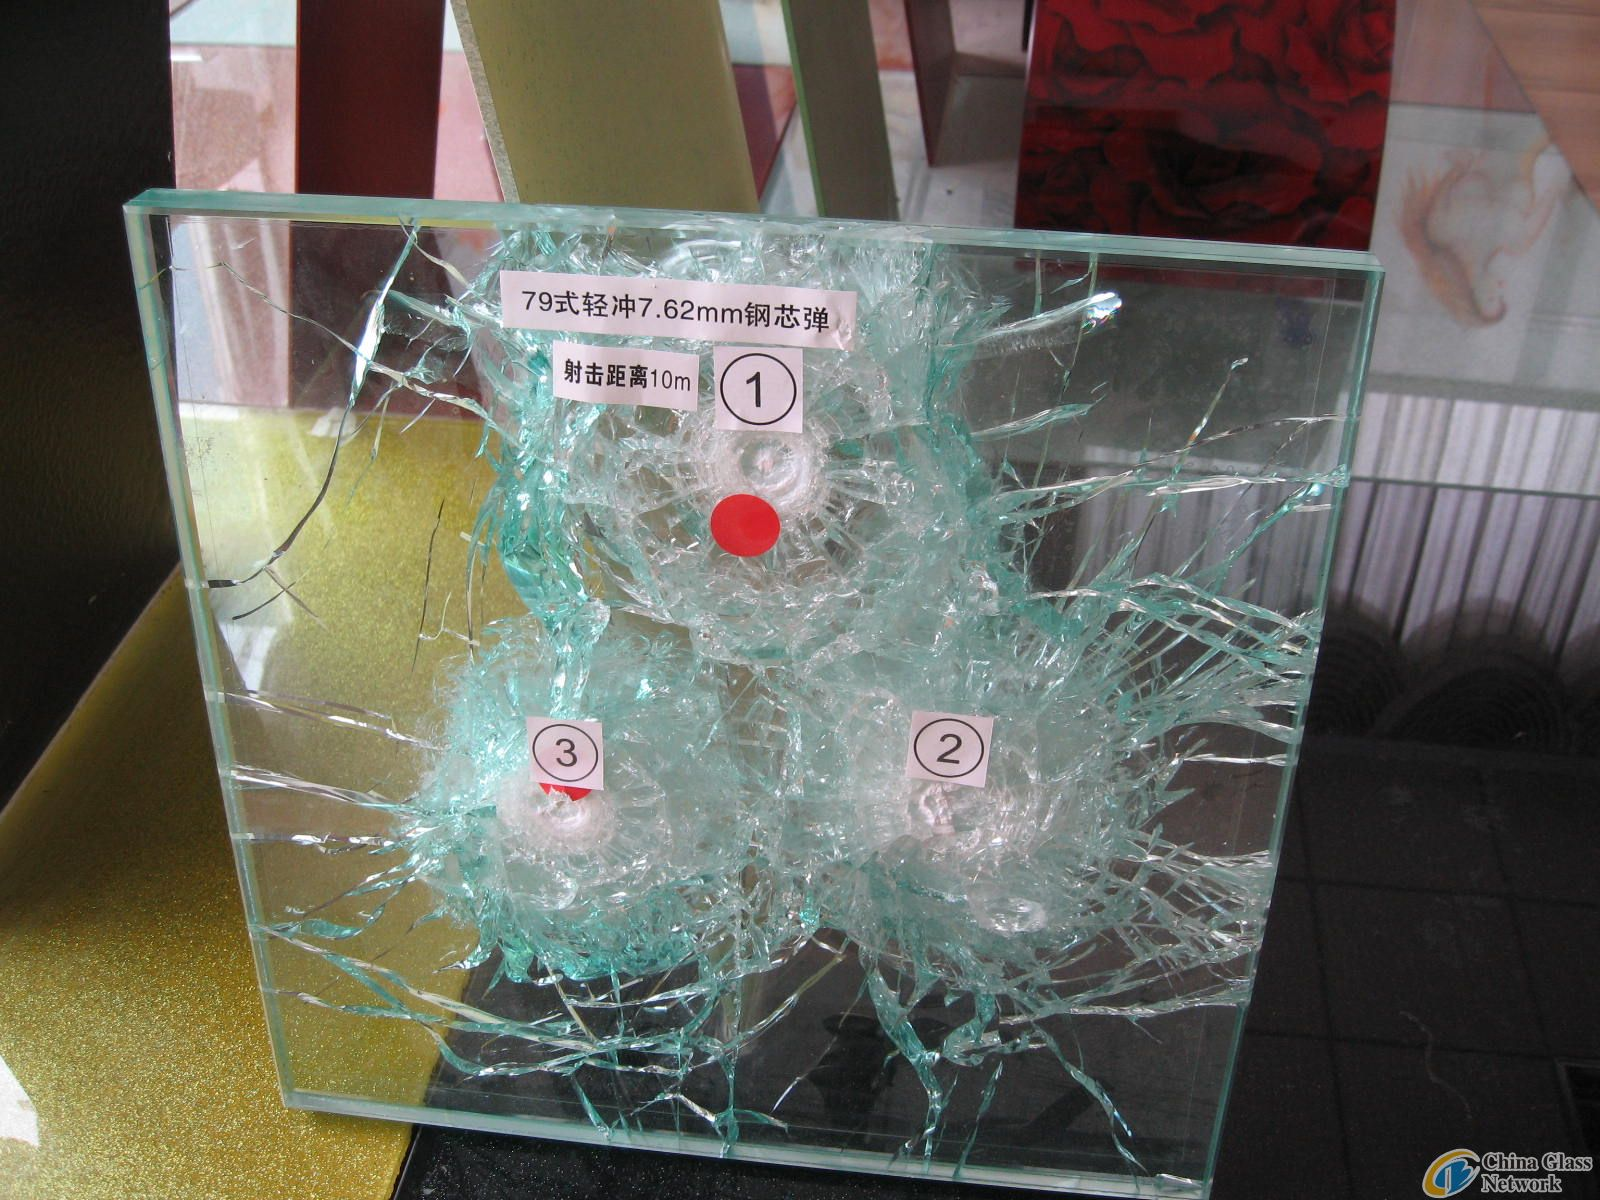 Bullet proof glass (flora.aode at gmail dot com)